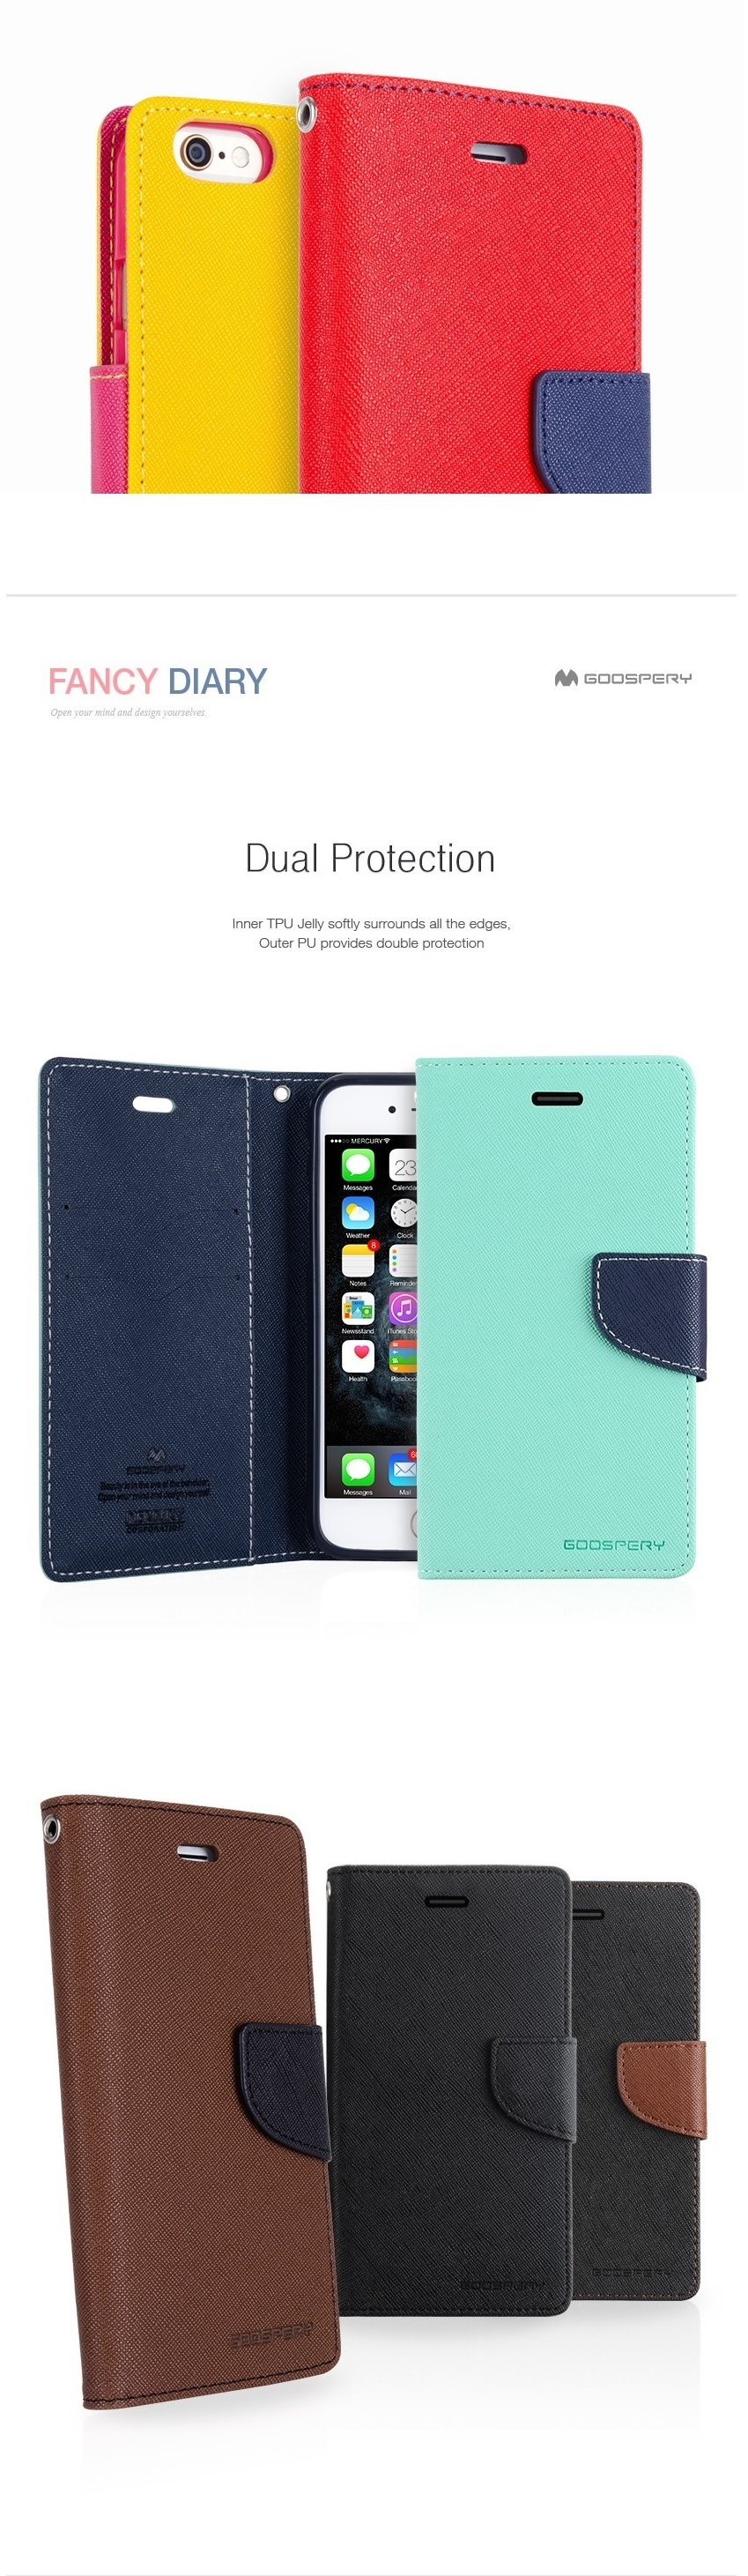 Promo Goospery Iphone 8 Pearl Jelly Case With Hole Clear Terbaru The Little Things She Needs Reca Blue Sepatu Flat Tsn0001142c0032 Biru 40 Buy Deals For Only S199 Instead Of S0